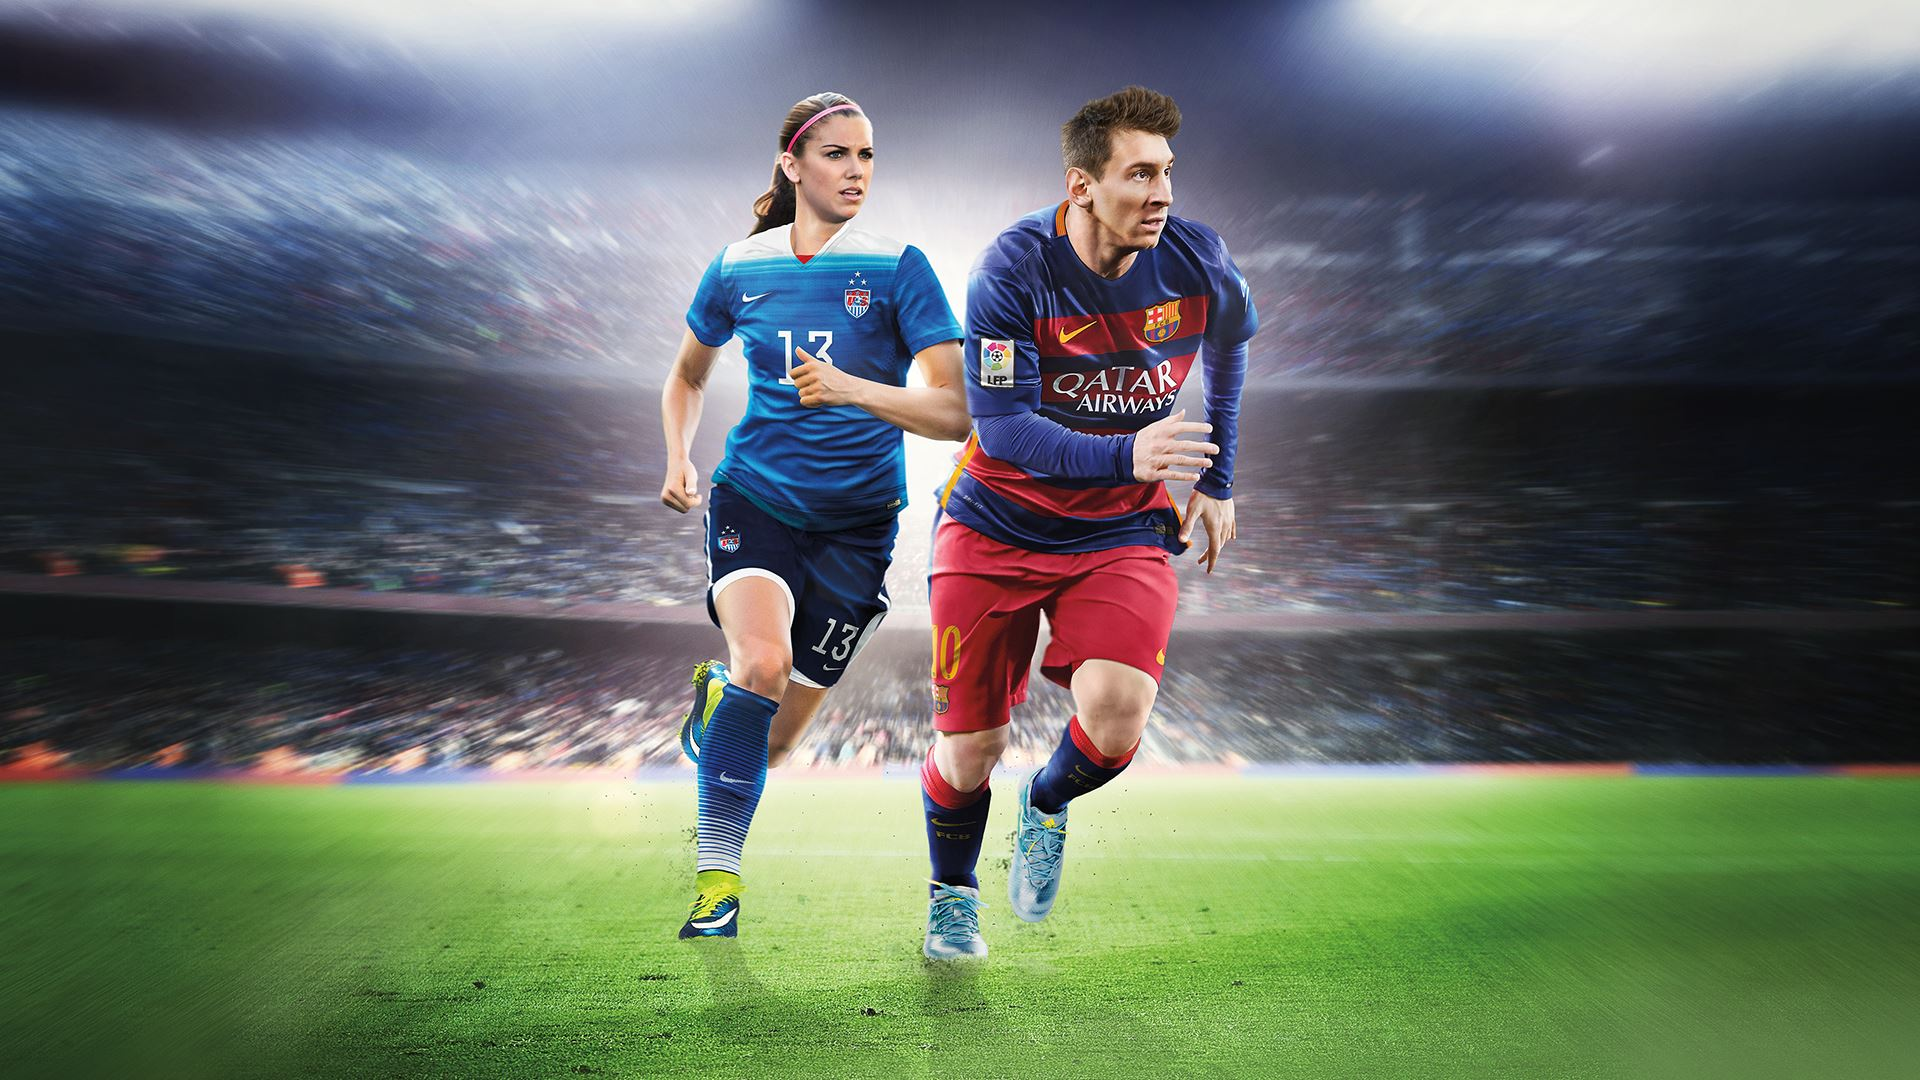 gorgeous fifa 16 wallpaper full hd pictures